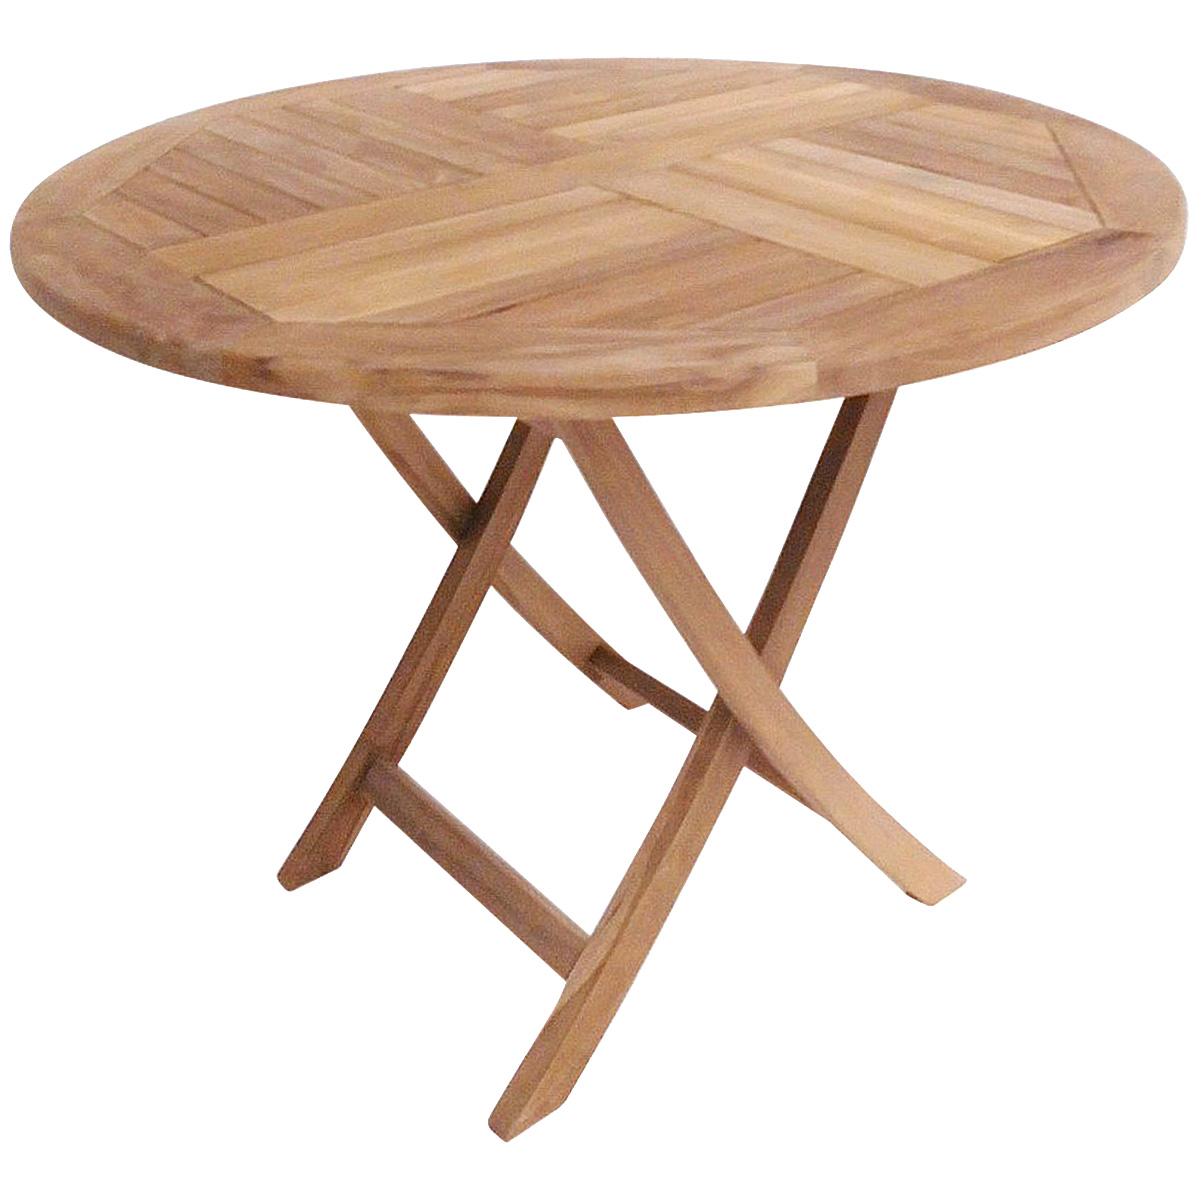 Charles bentley solid wooden teak round 2 4 seater table for 12 seater wooden outdoor table